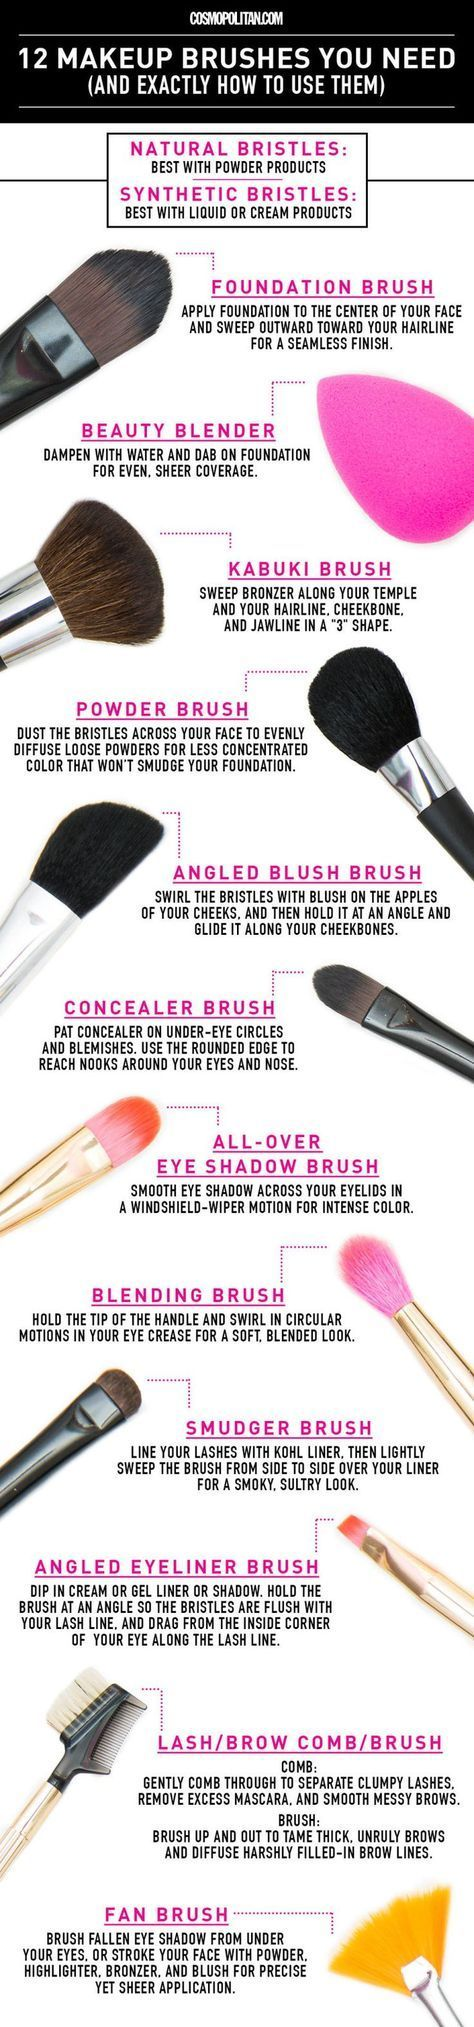 THE BEST MAKEUP BRUSHES GUIDE: Cosmopolitan.com rounded up the best and most helpful beauty brushes and makeup tools every girl needs in her arsenal. Here you'll learn how to use each tool and what makeup to use with it. Click through to see beauty tutor